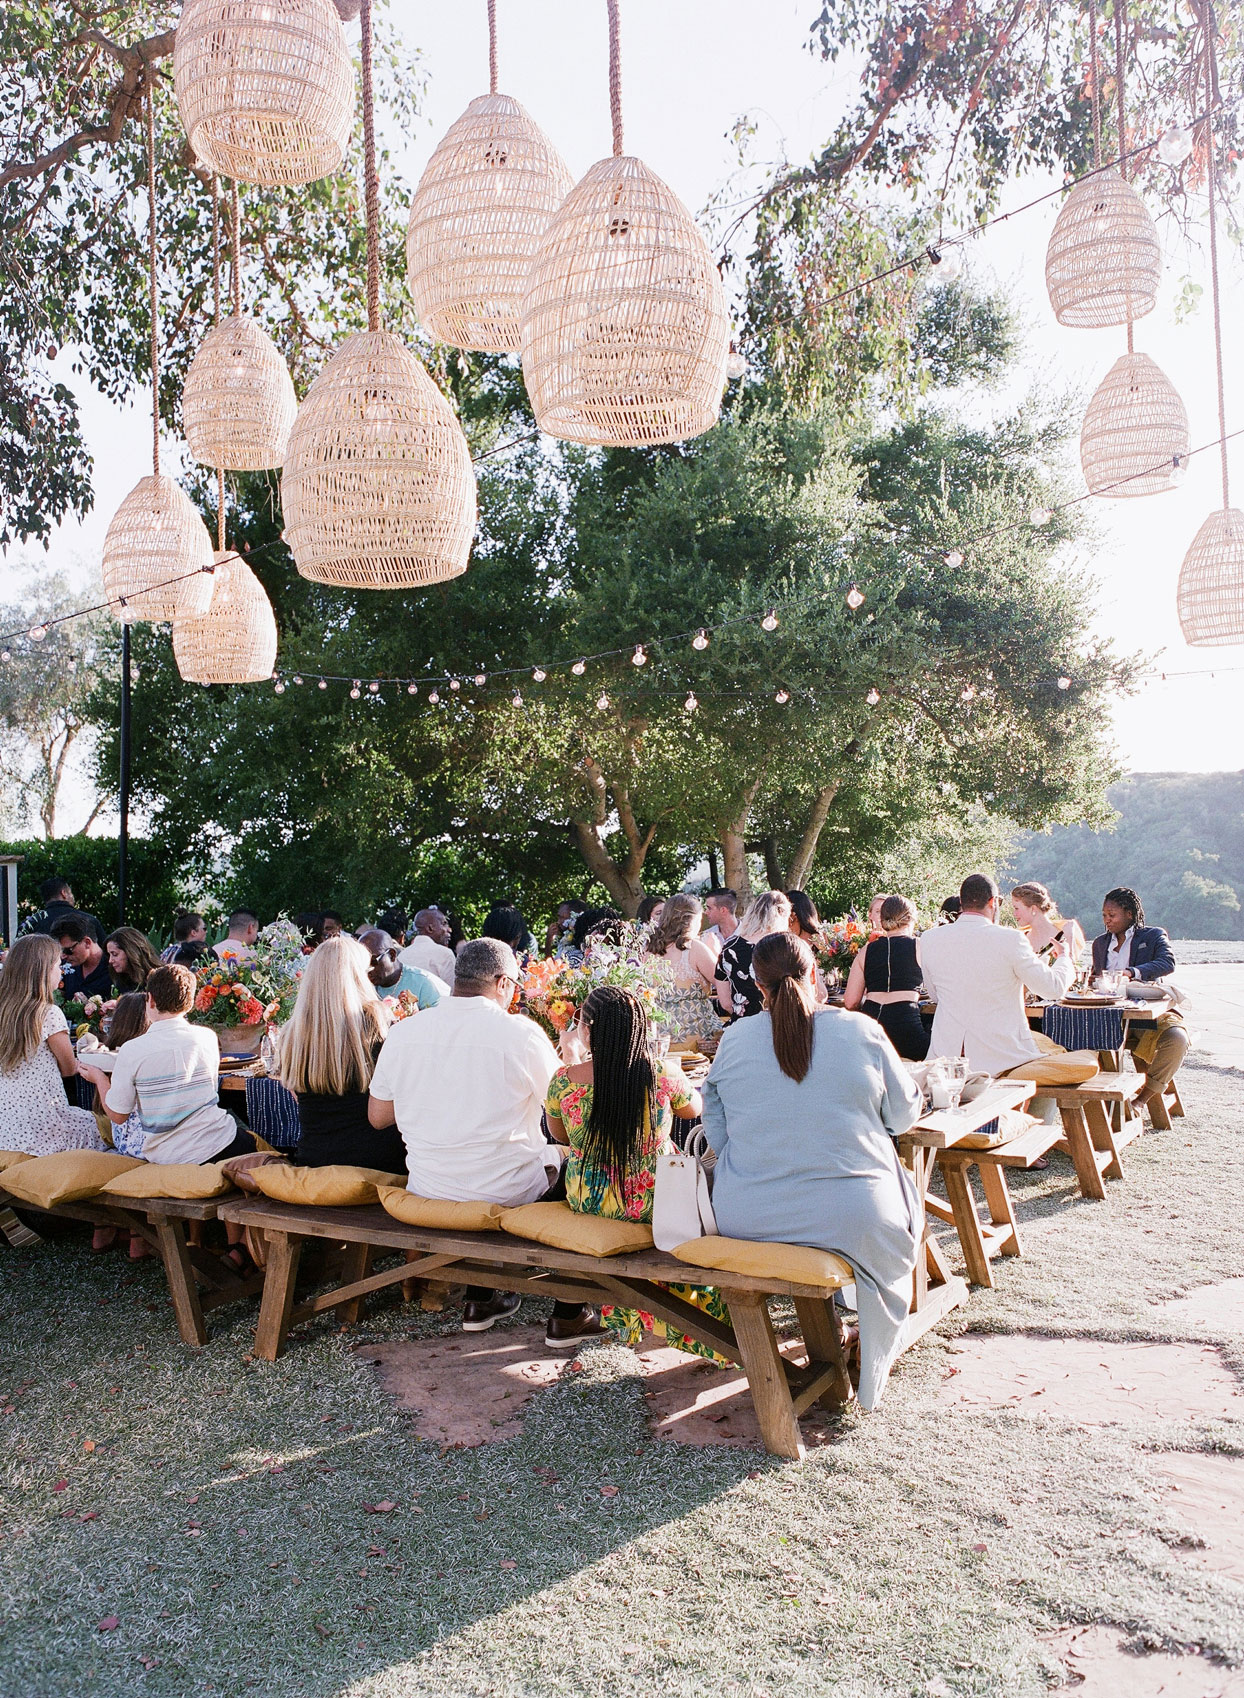 outdoor rehearsal dinner long wooden tables and benches with pillow cushion seating